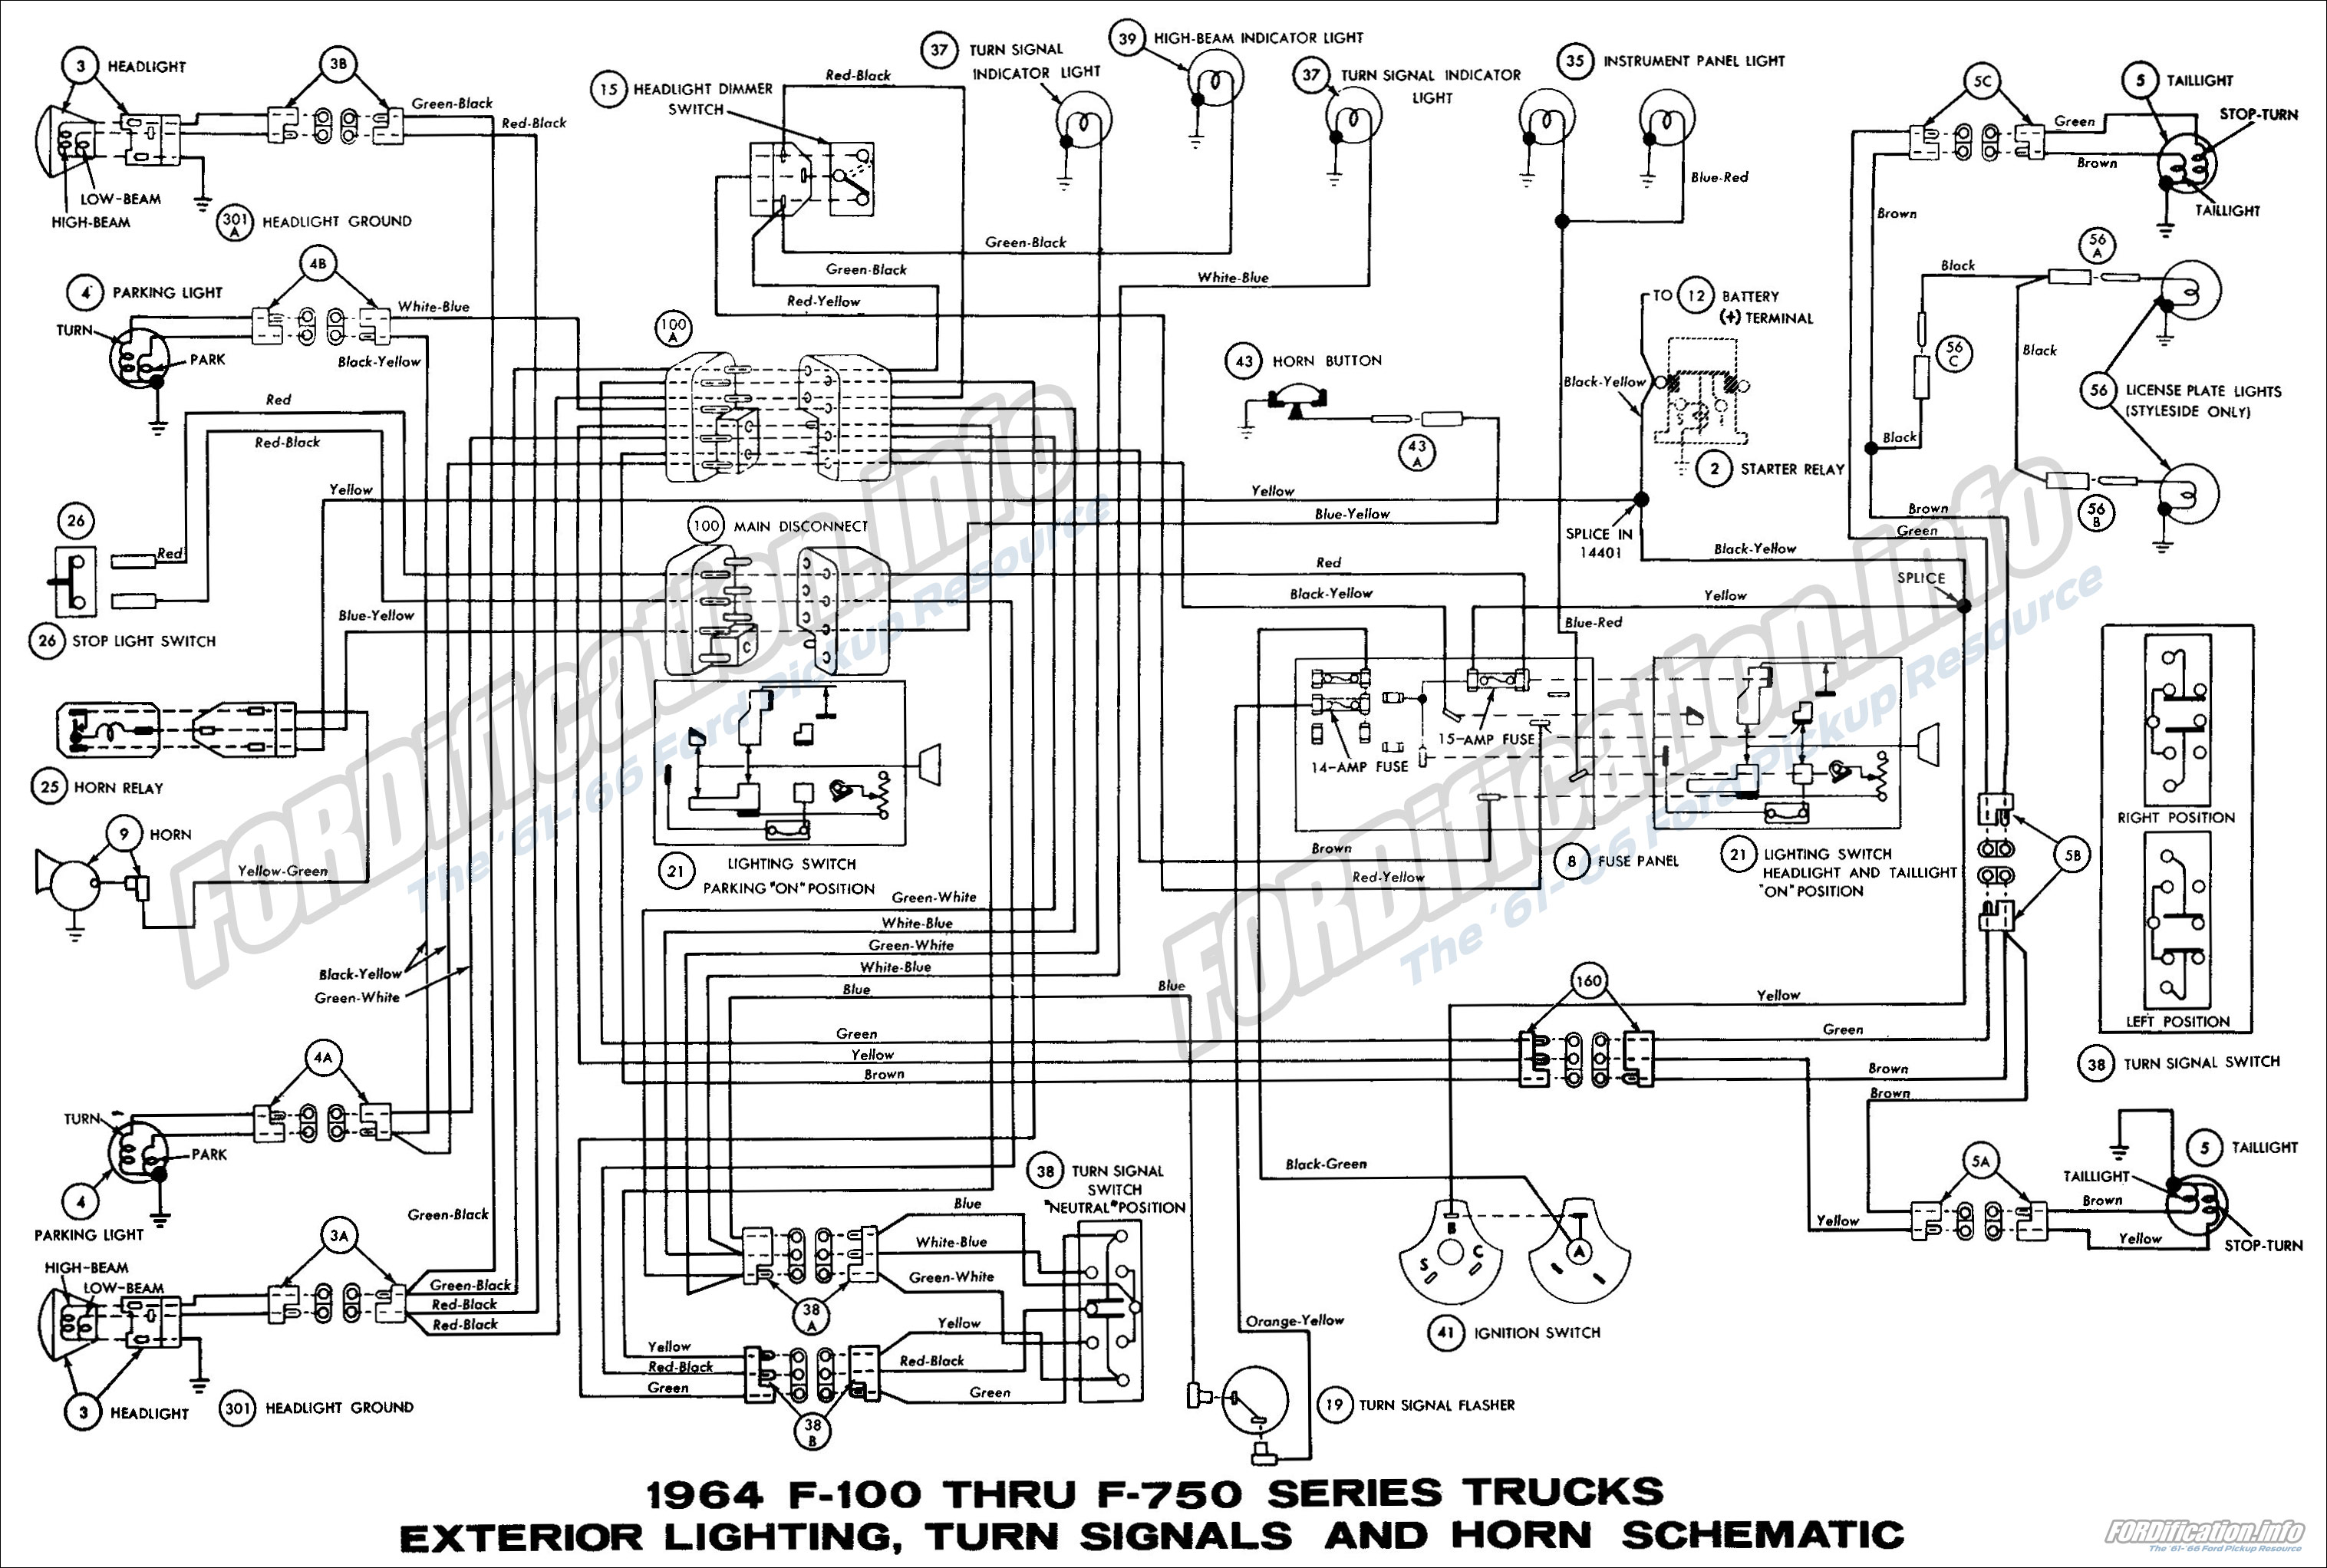 1964_09 1964 ford truck wiring diagrams fordification info the '61 '66 f750 wiring diagram at panicattacktreatment.co